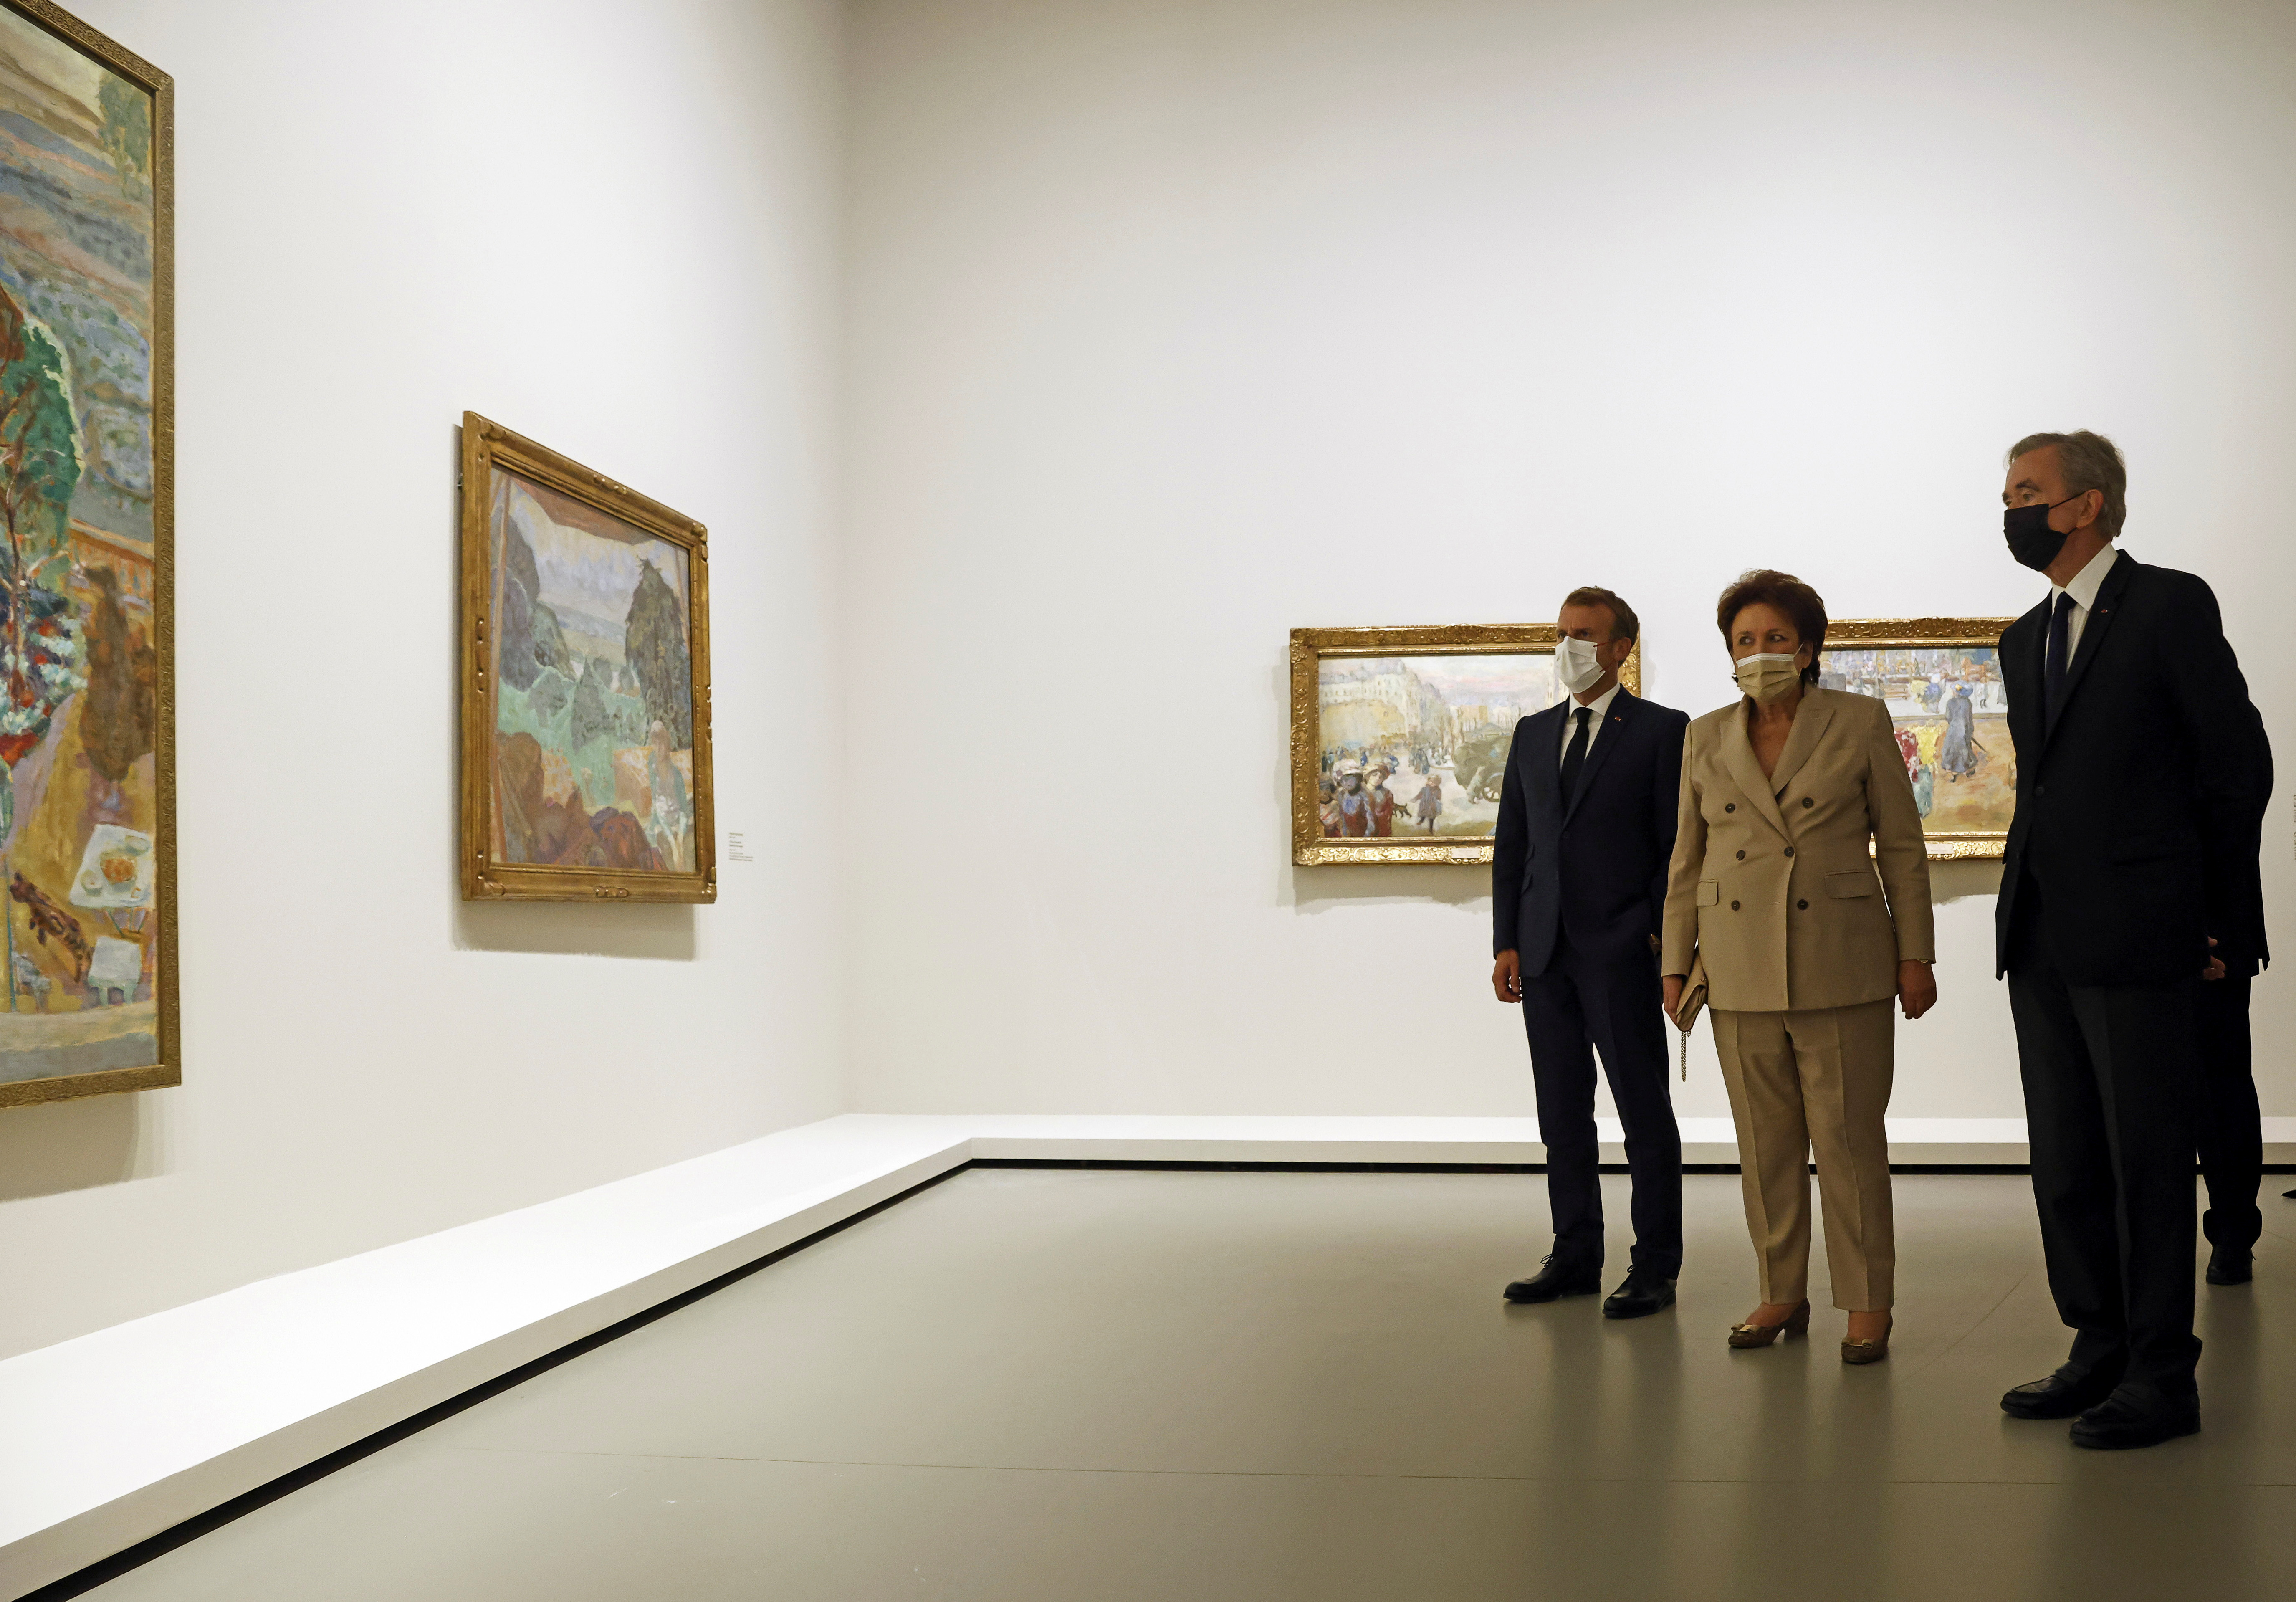 French President Emmanuel Macron, French culture minister Roselyne Bachelot and Head of LVMH luxury group visit the exhibition 'The Morozov Collection, Icons of Modern Art' at Foundation Louis Vuitton in Paris, France, September 21, 2021. Yoan Valat/Pool via REUTERS